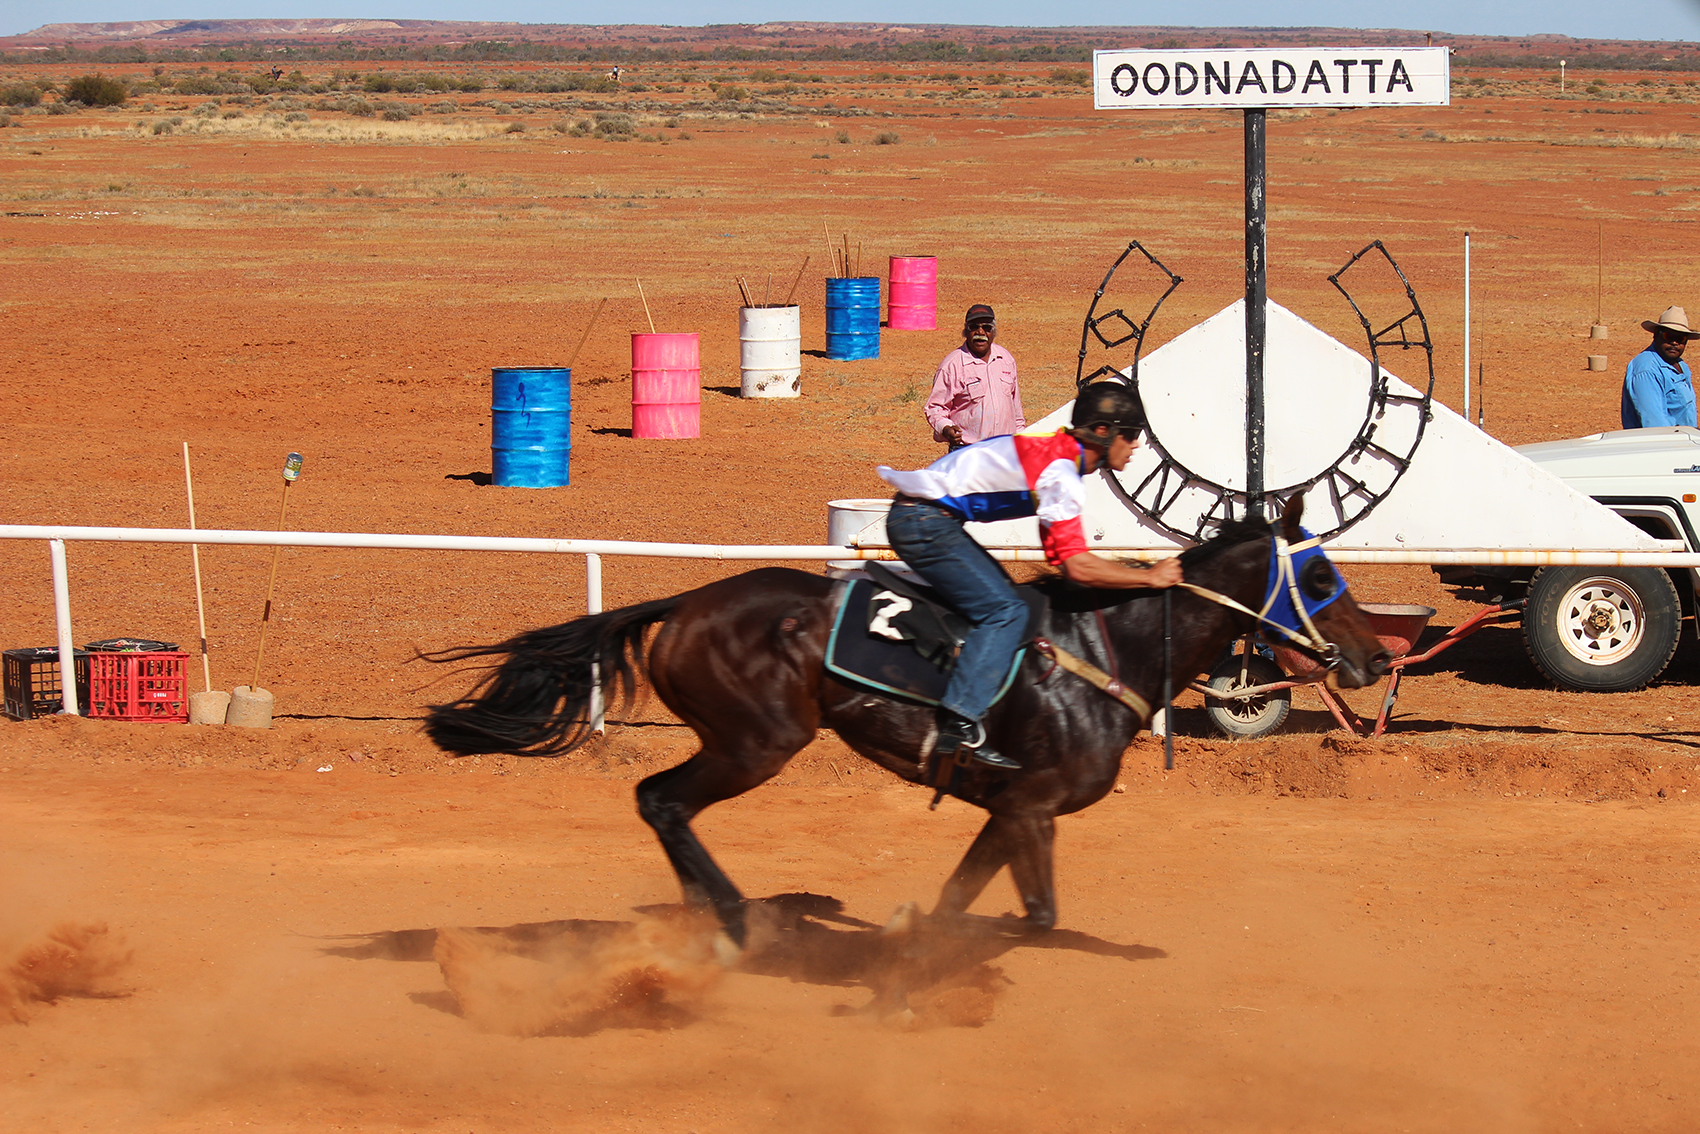 Finishing post Oodnadatta